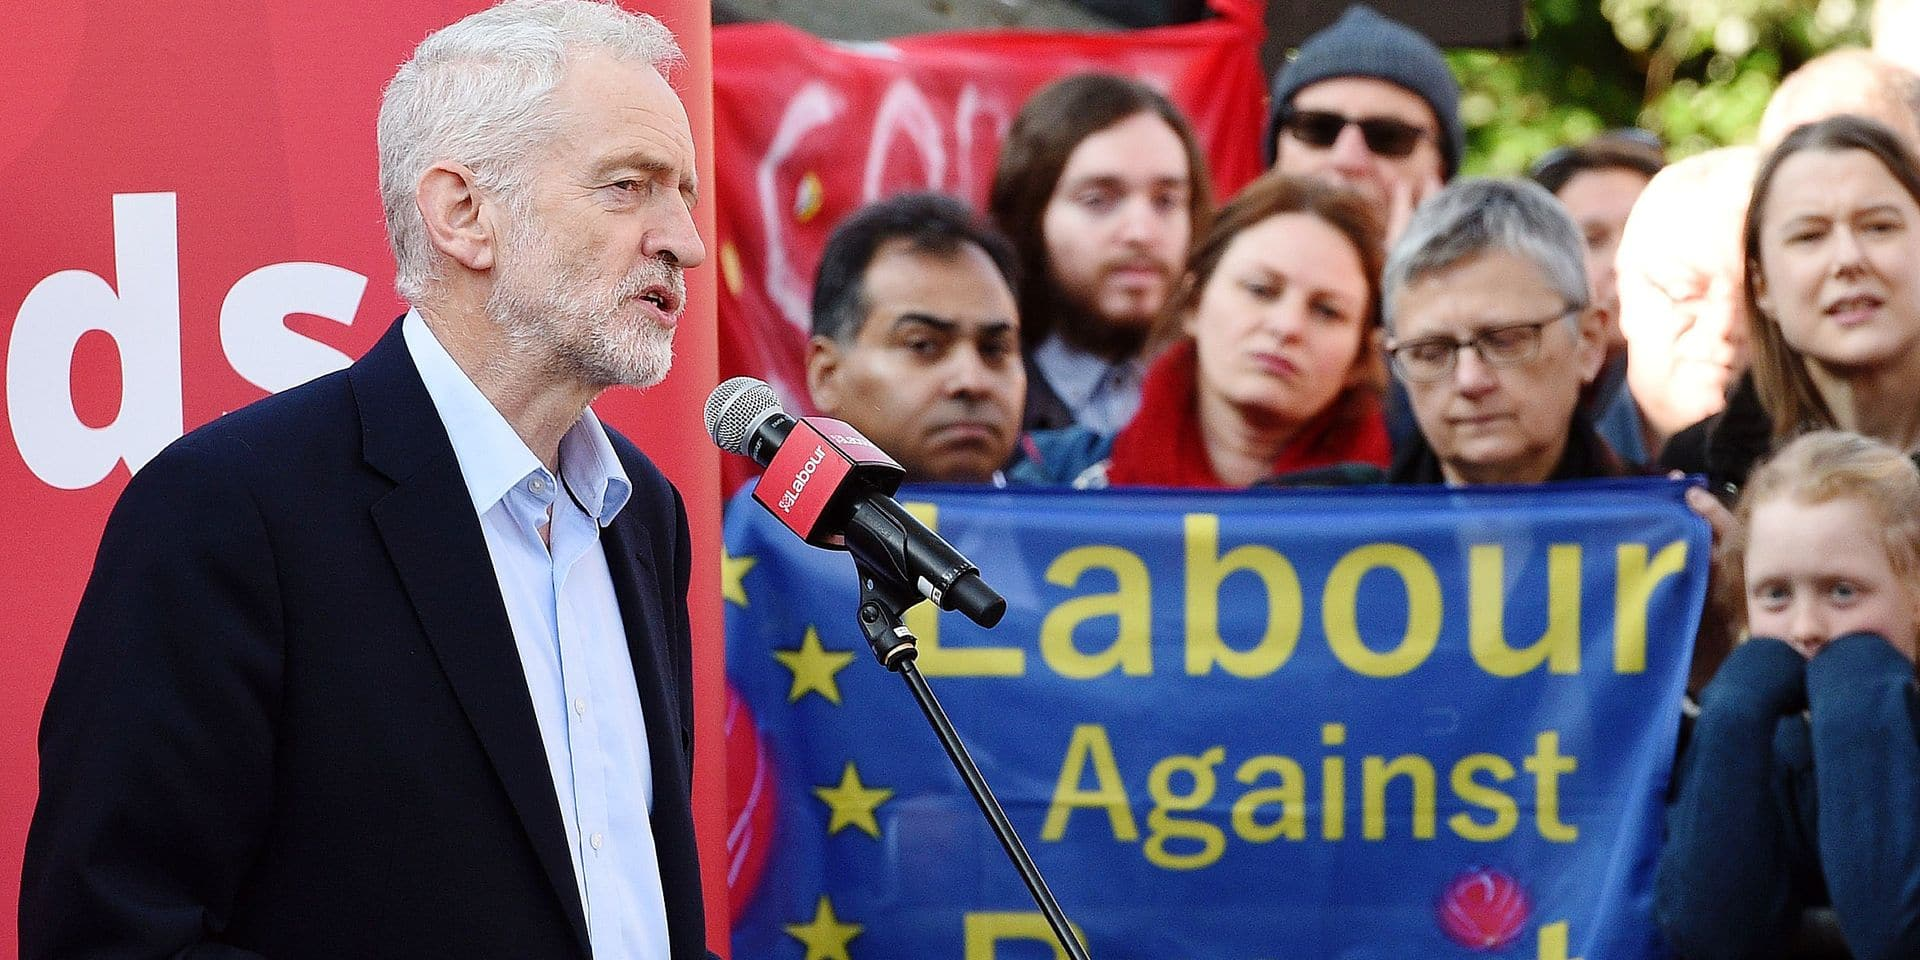 (FILES) In this file photo taken on February 23, 2019 Opposition Labour party leader Jeremy Corbyn addresses at a rally, in Broxtowe, central England. - Britain's main opposition Labour Party said on February 25 it was committed to eventually supporting a second referendum on leaving the European Union if its own plan for Brexit is not approved. (Photo by Oli SCARFF / AFP)